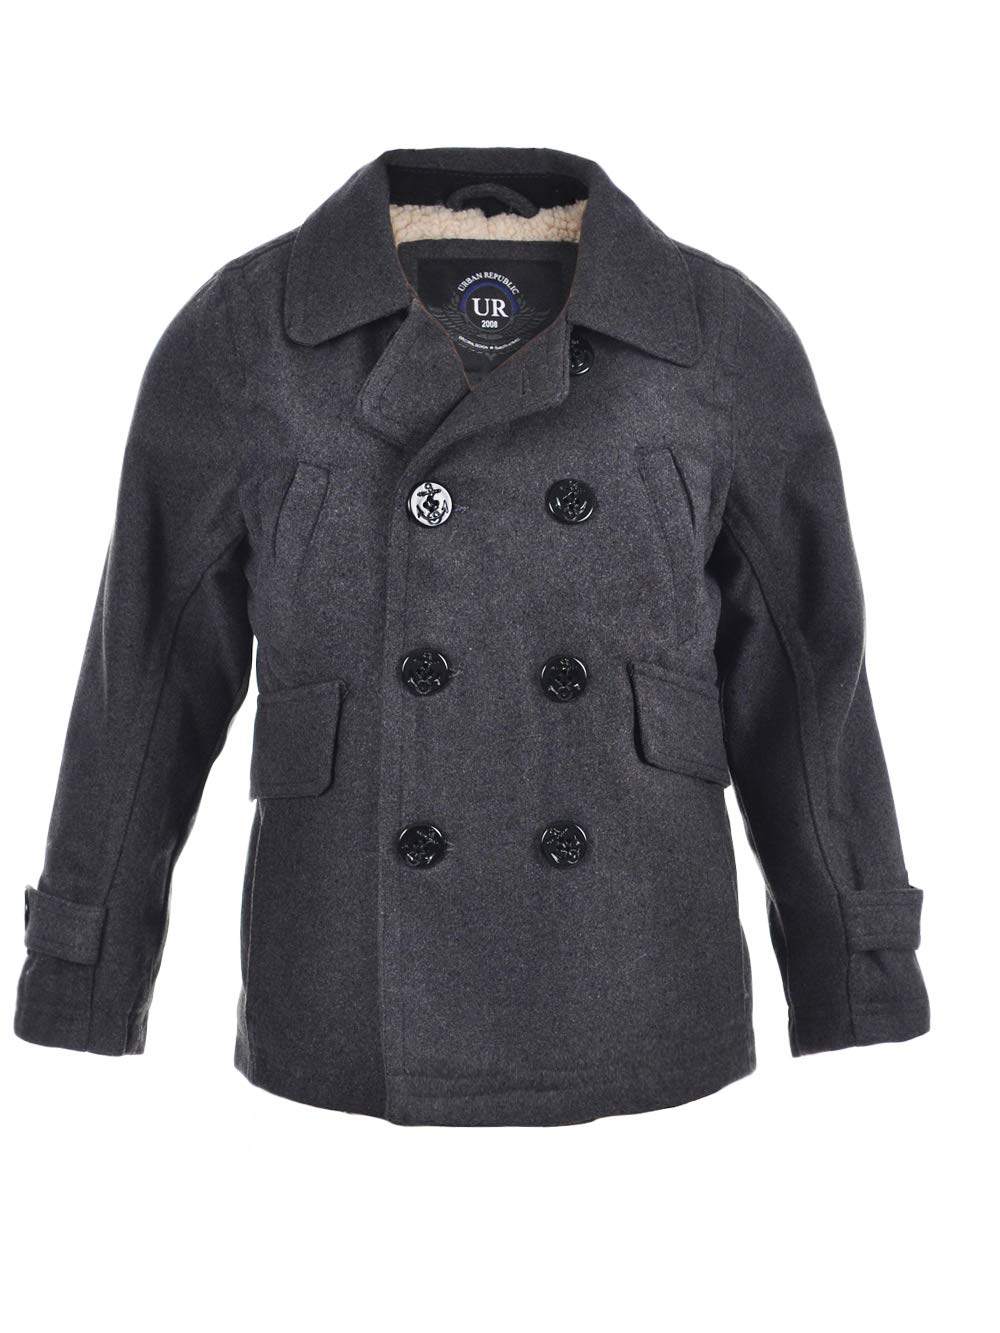 Urban Republic Little Boys' Toddler Wool Peacoat - Charcoal Gray, 3t